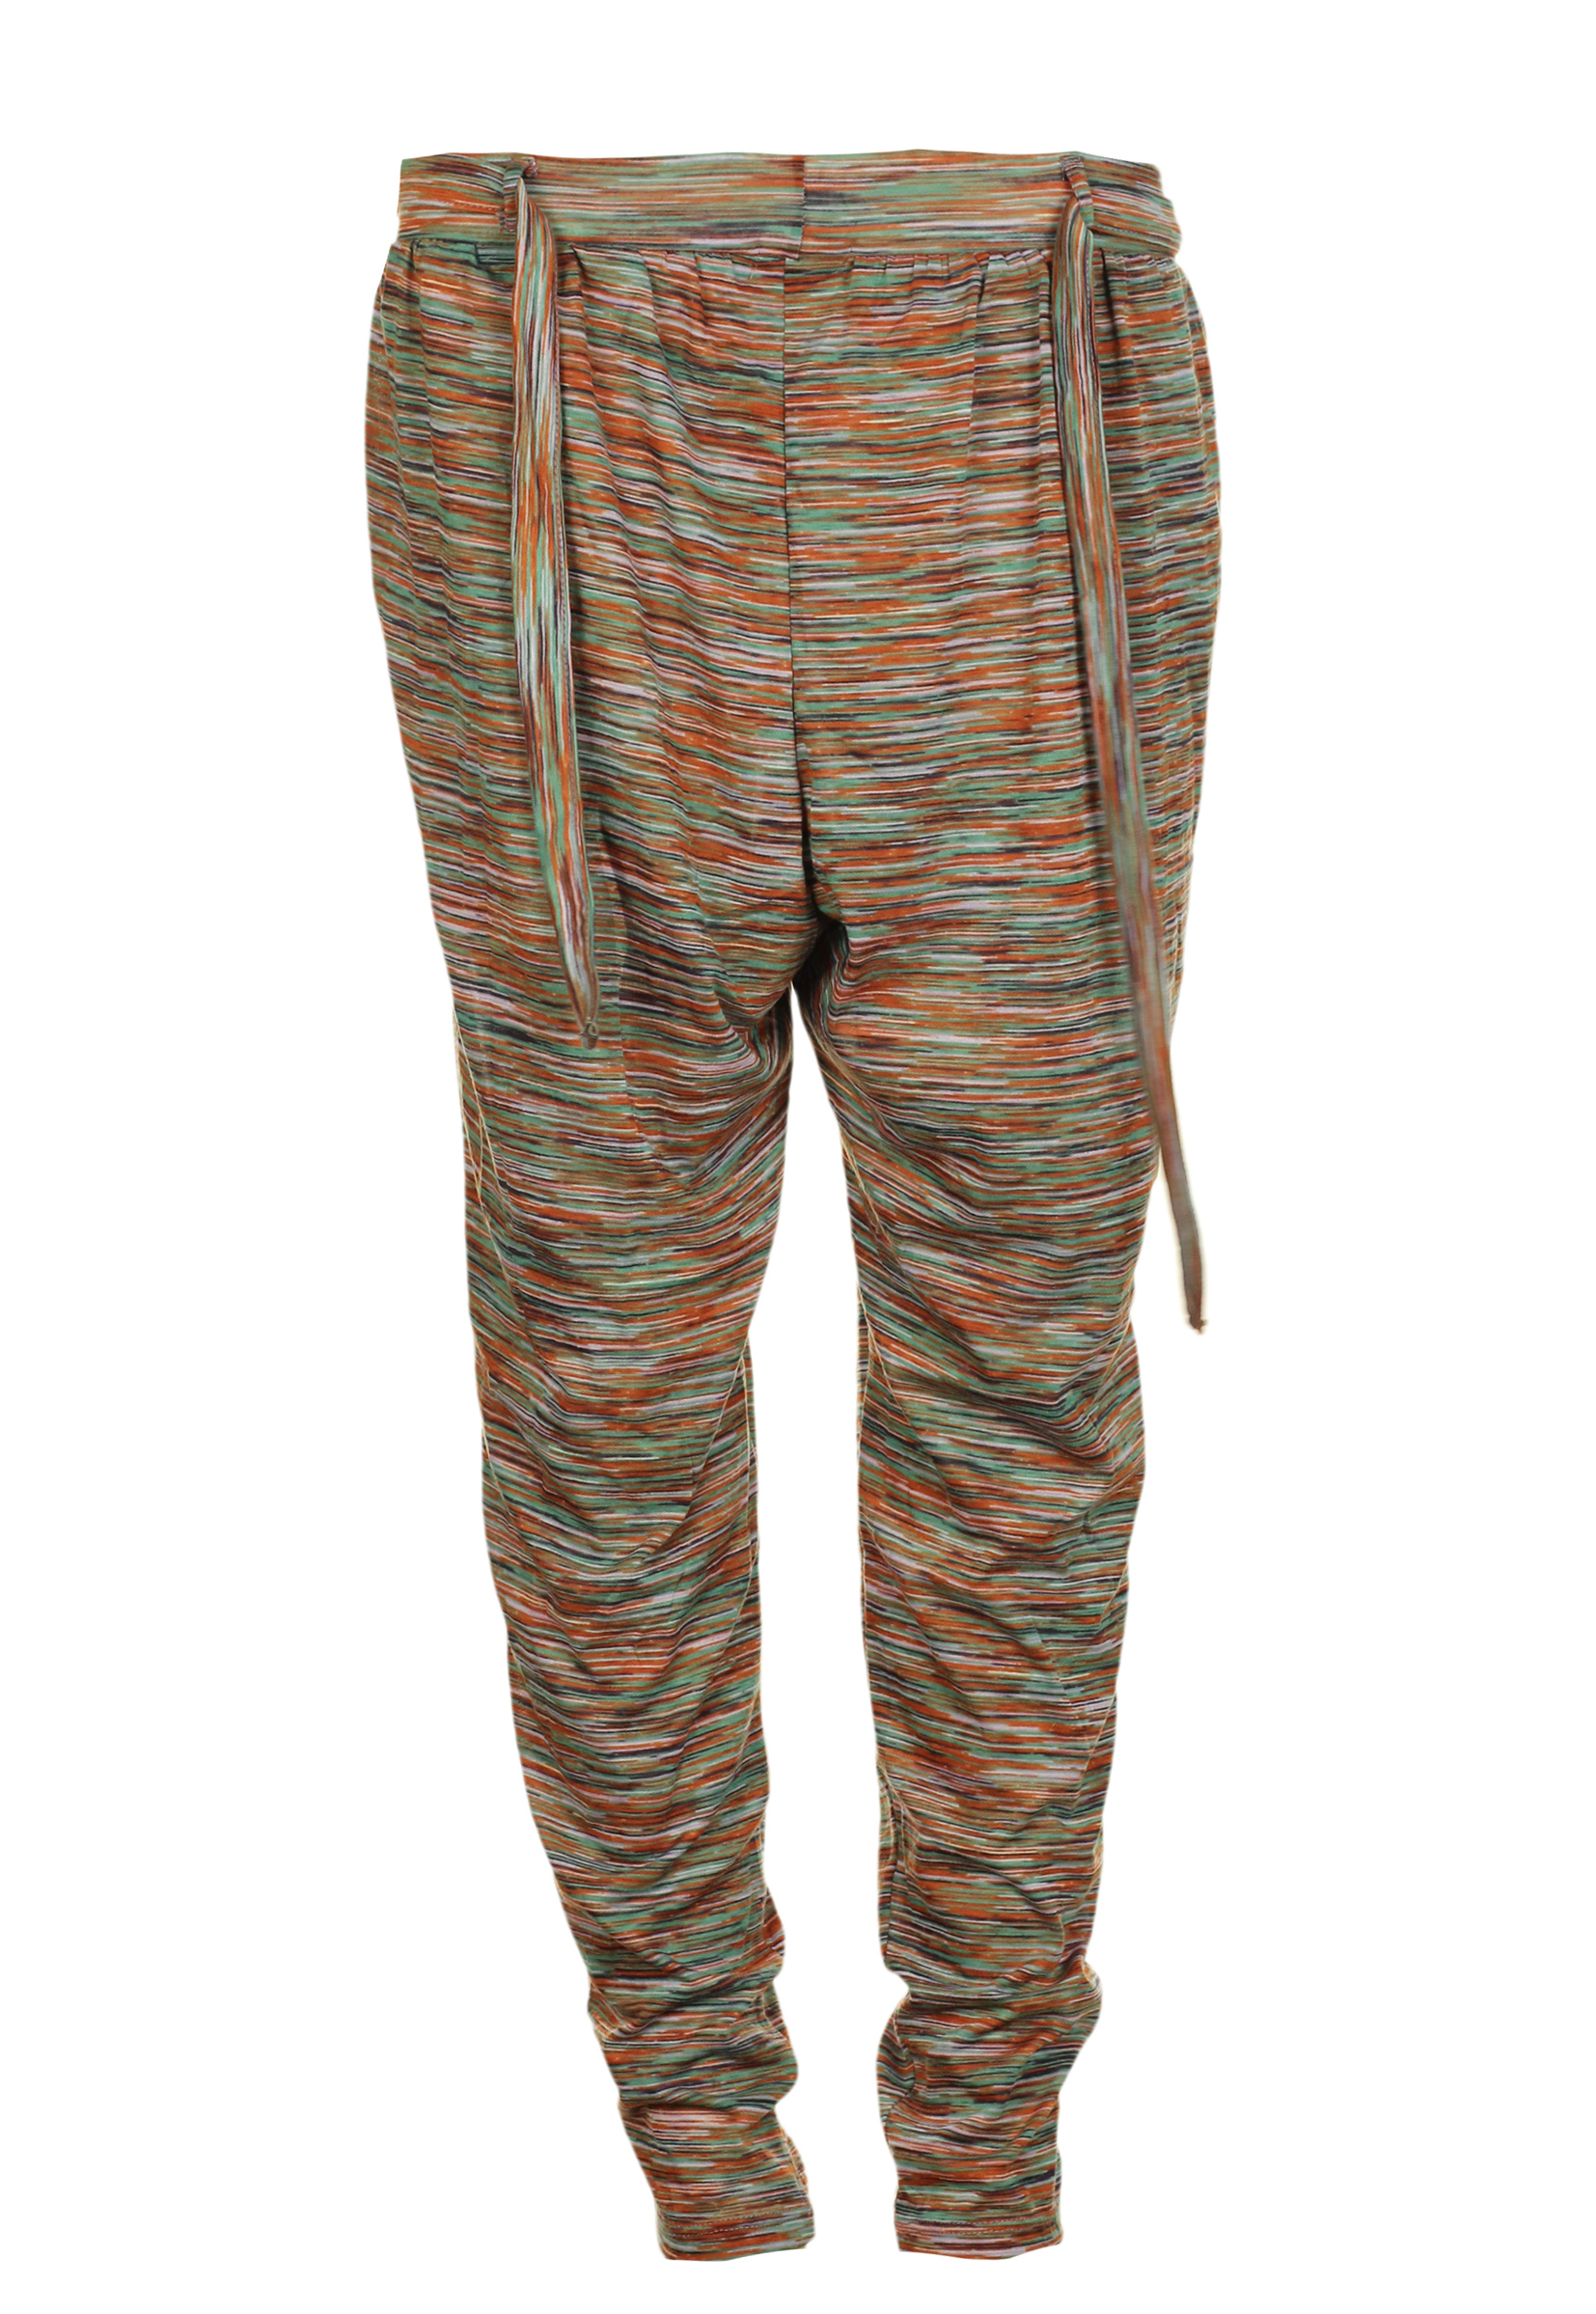 Pantaloni Pull and Bear Frenzy Colors, preturi, ieftine